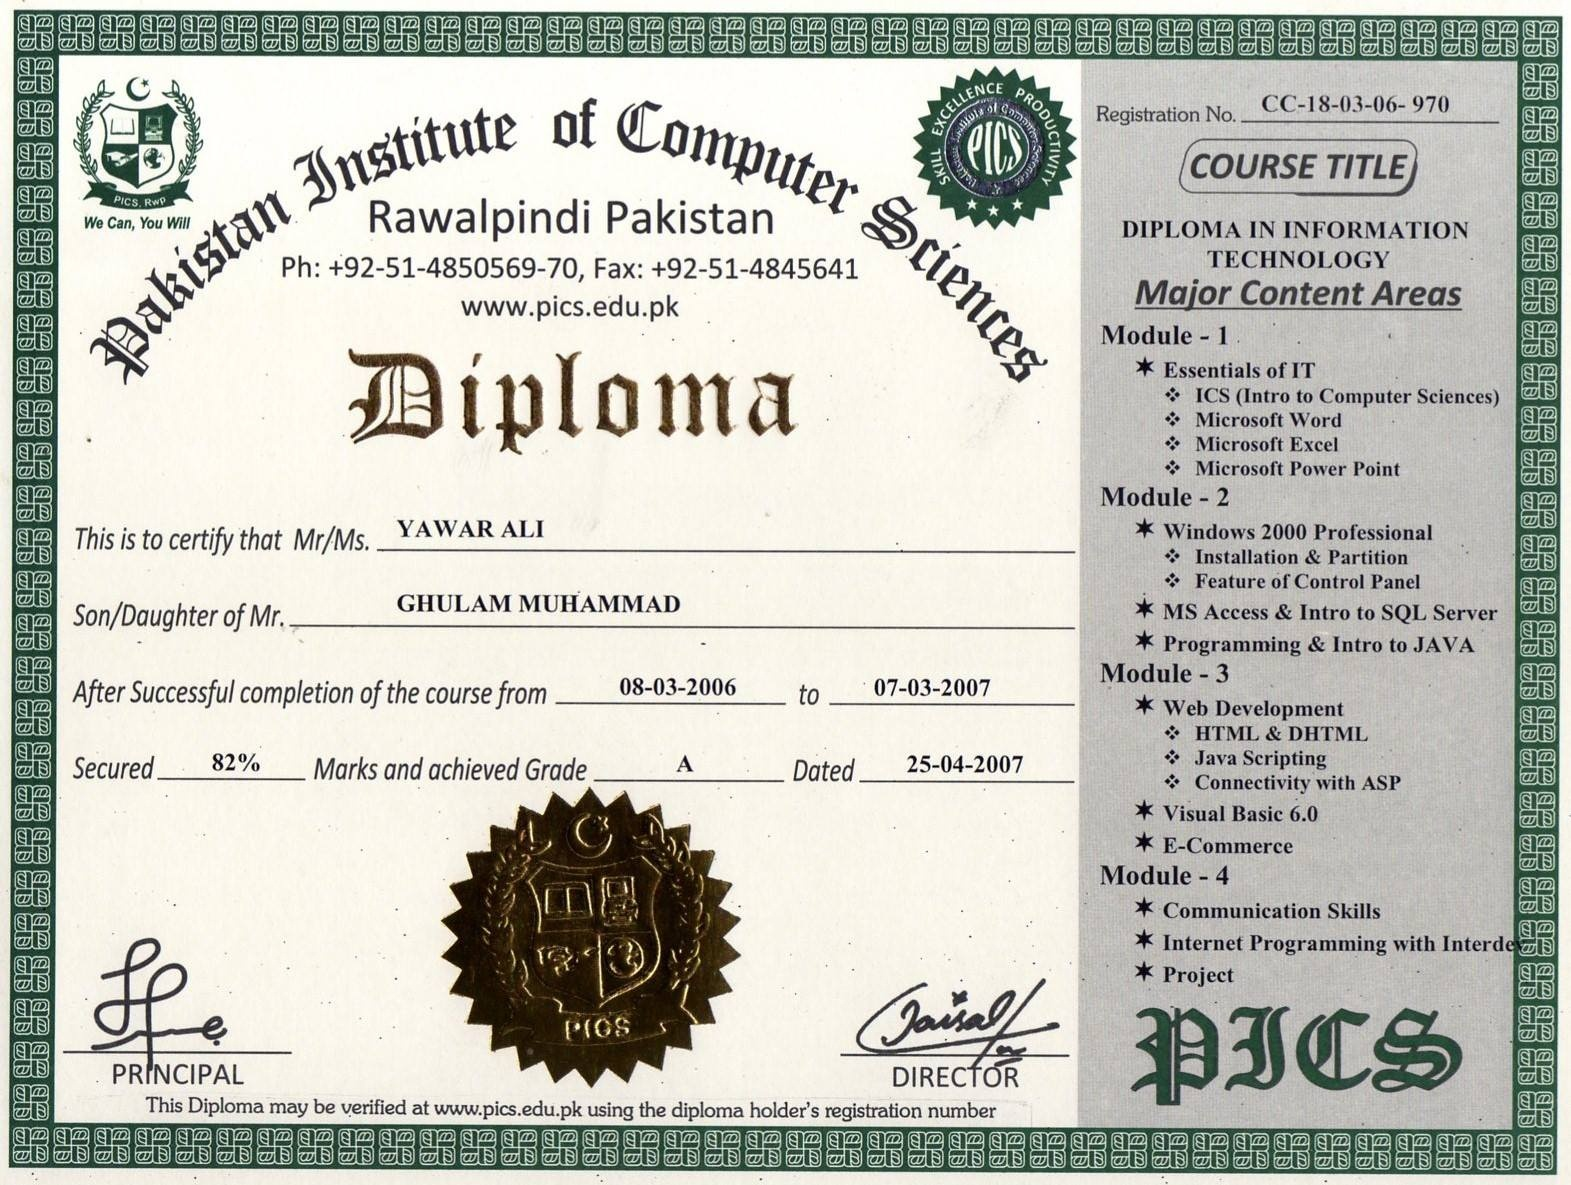 Pakistan Institute Of Computer Sciences, Free Online Certification - Free Online Courses With Printable Certificates